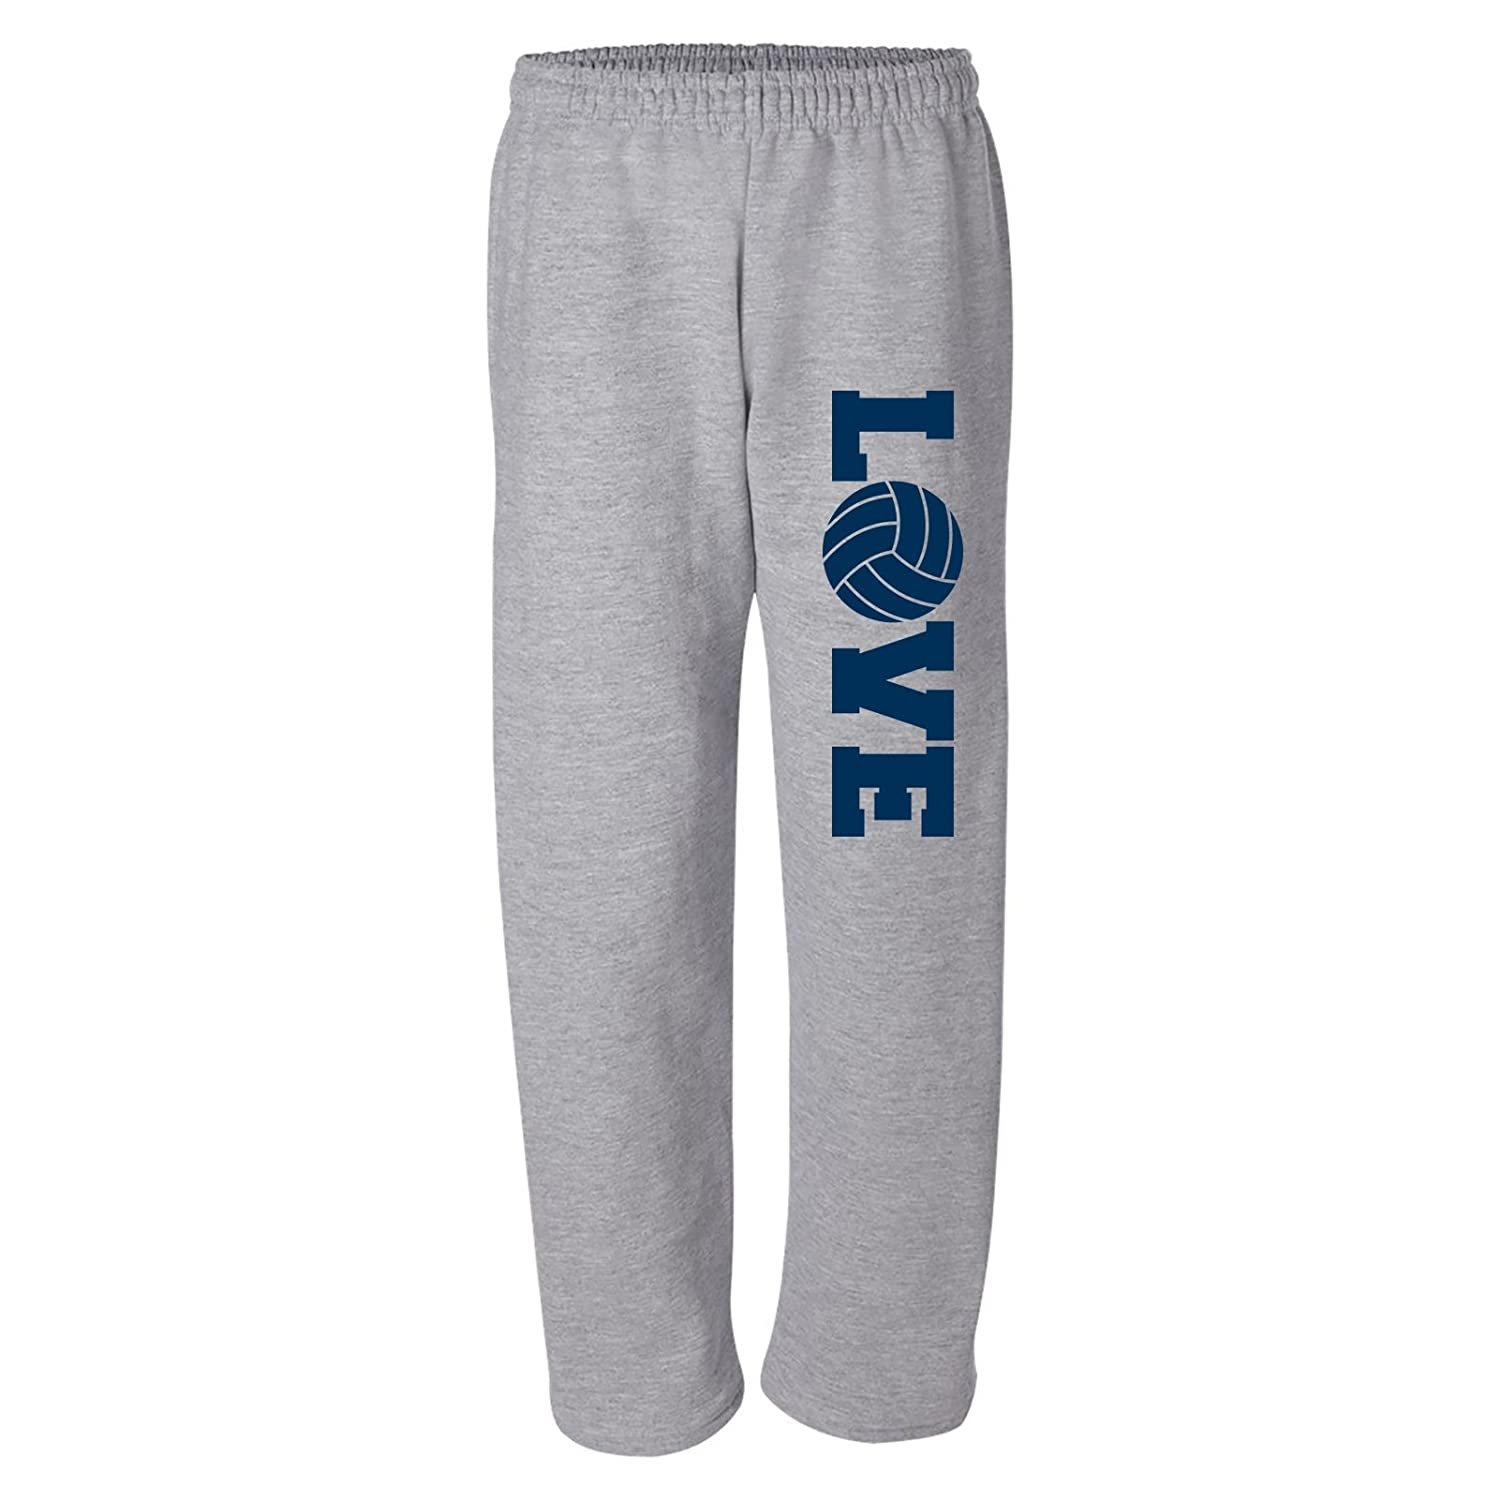 UGP Campus Apparel Volleyball Love Vball Team Color Unisex Open-Bottom Sweatpants